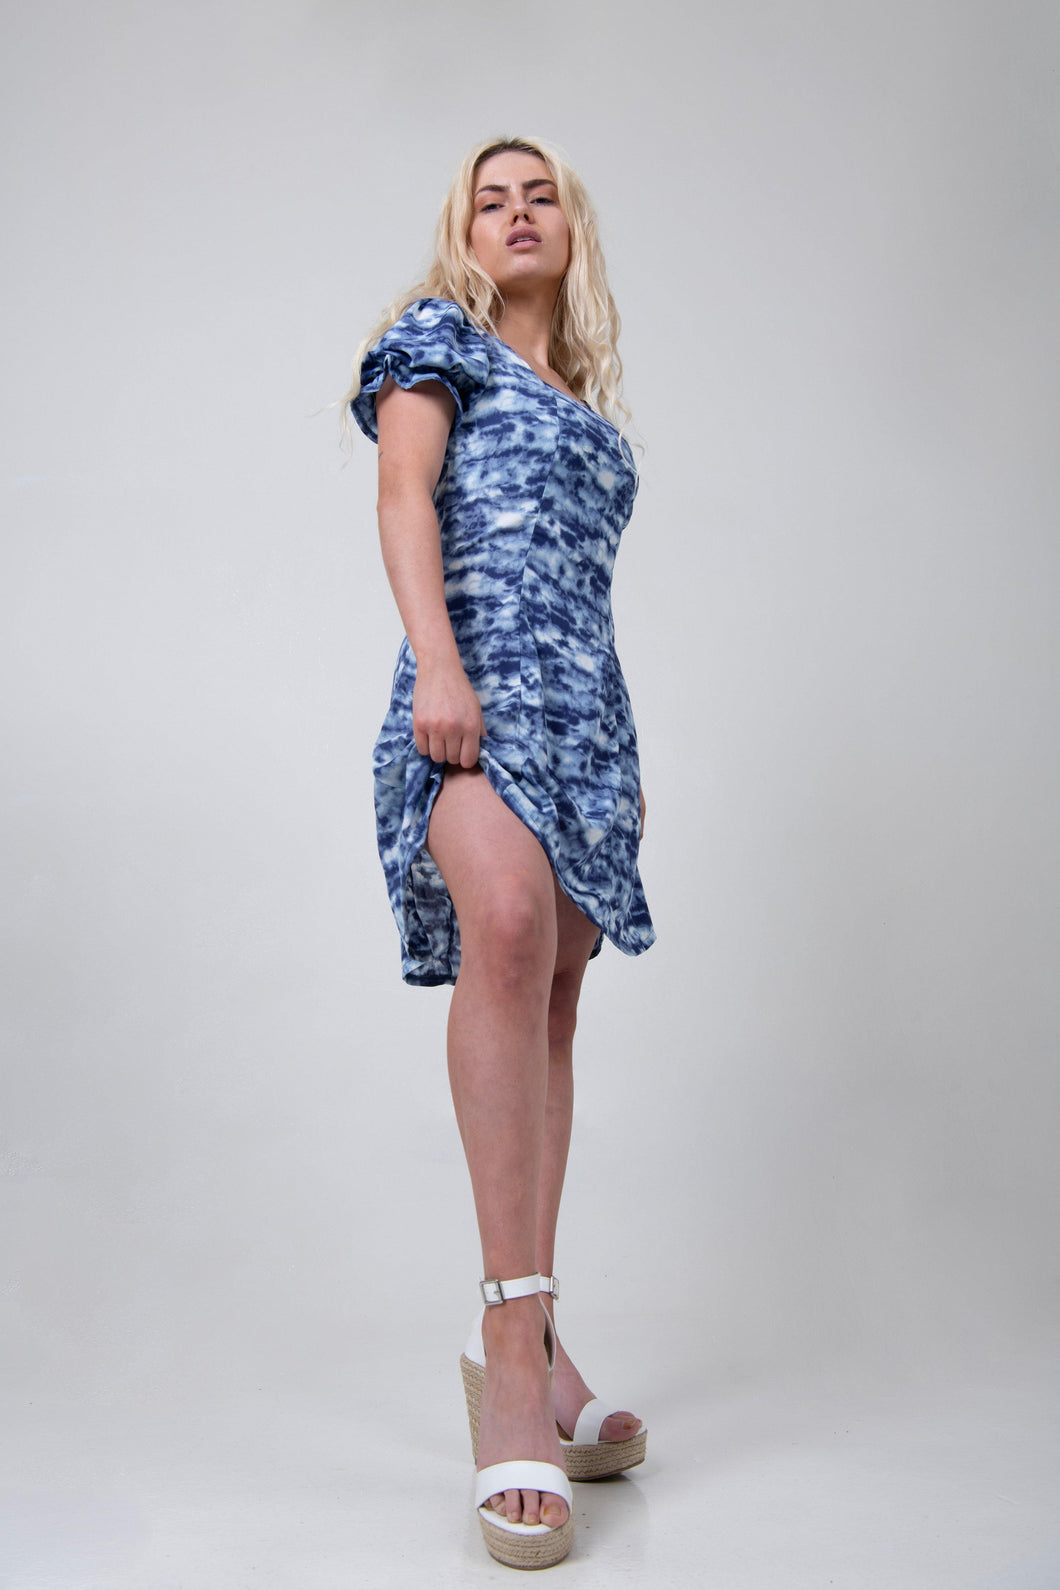 Puffy Sleeve Dress - Blue Tie Dye - Differently